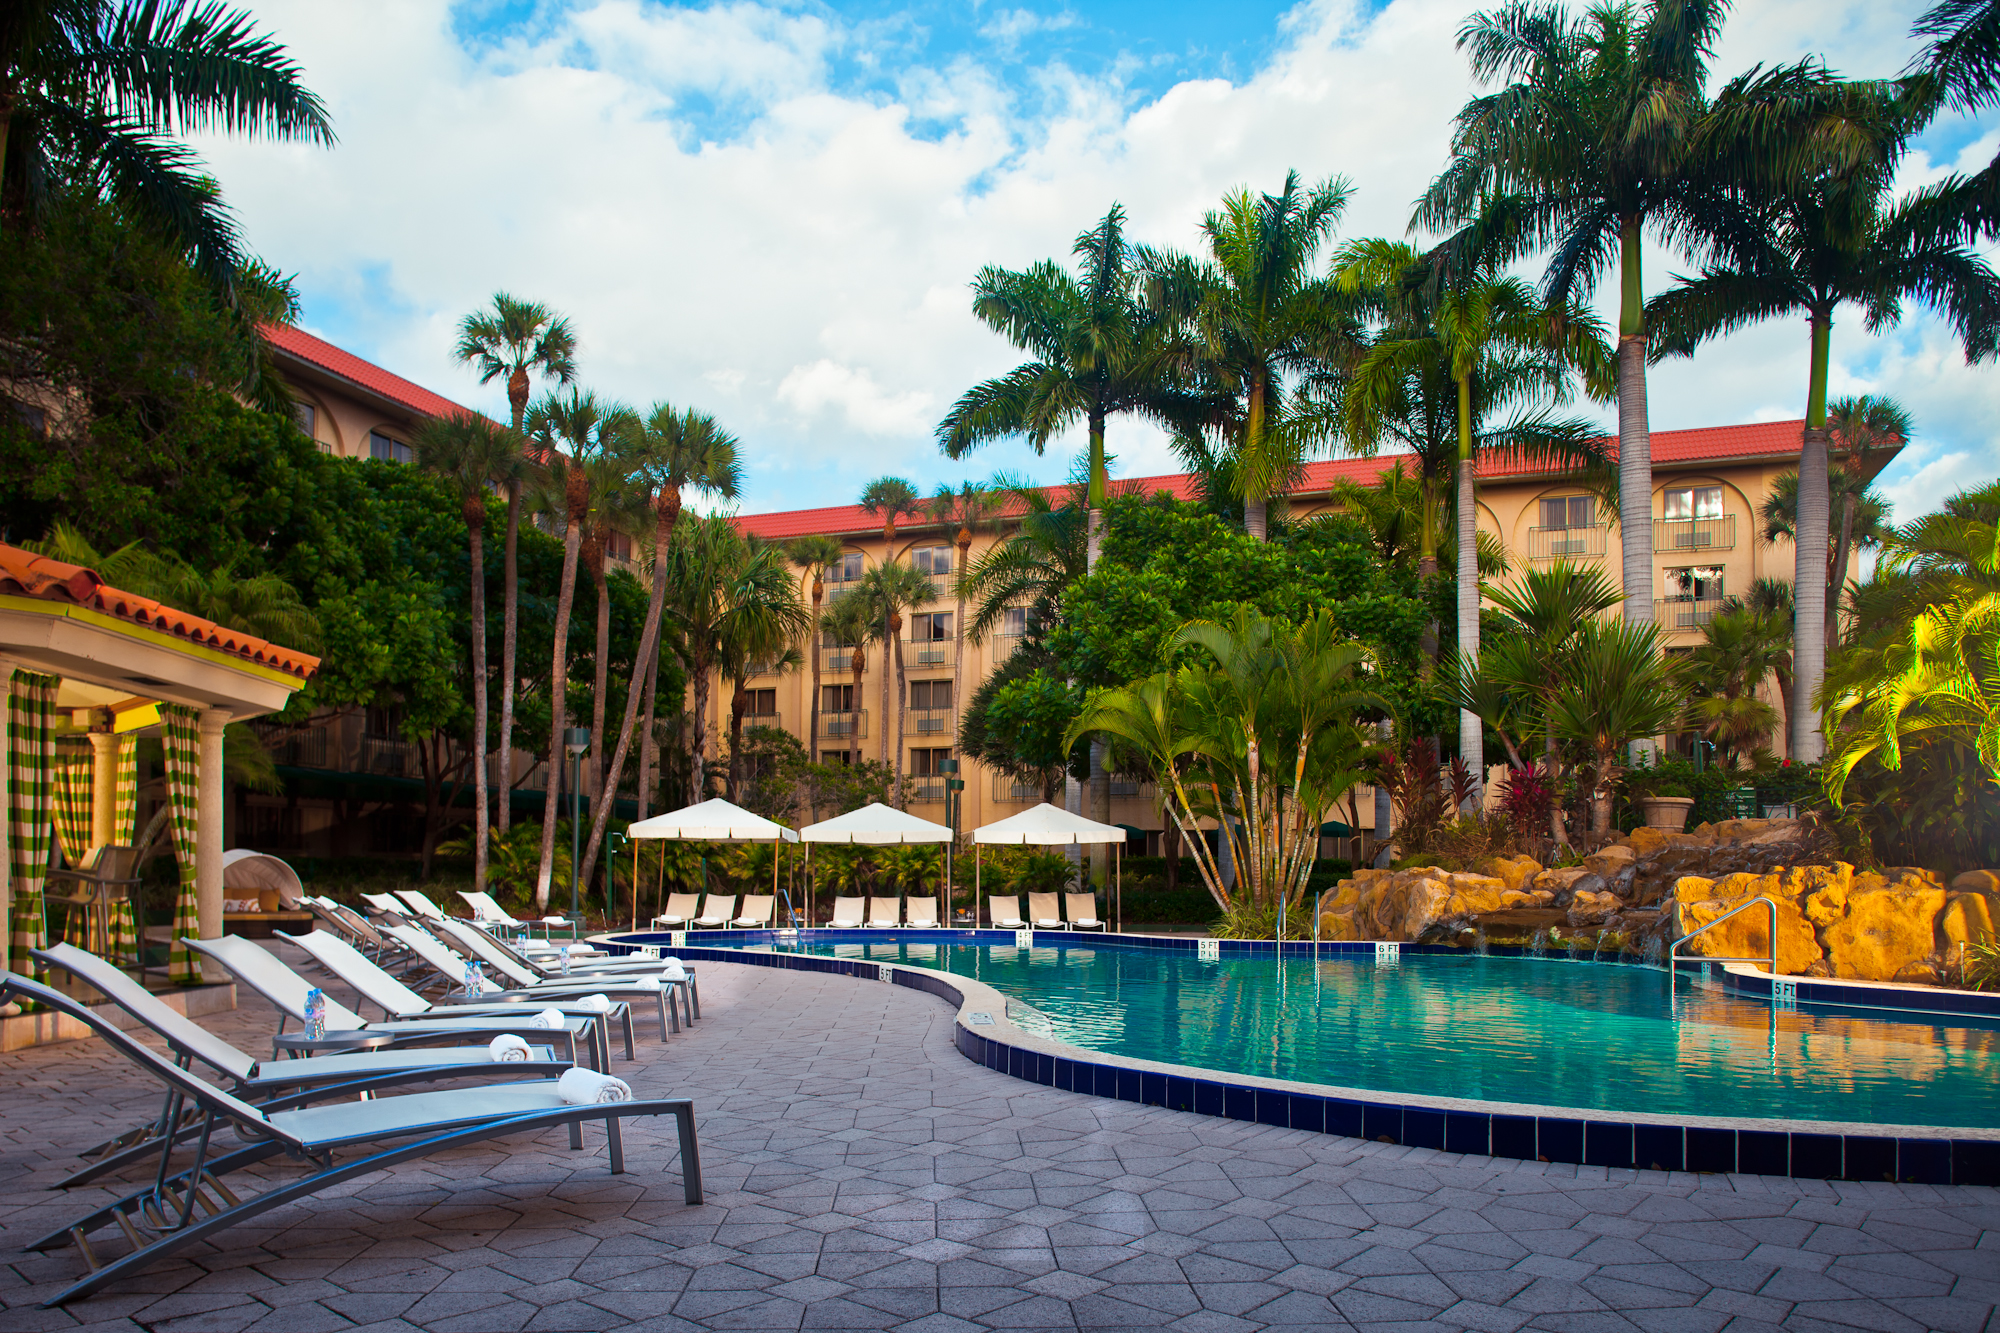 BOCA BEACH CLUB, A WALDORF ASTORIA RESORT - Hotels - Boca Raton, FL ...